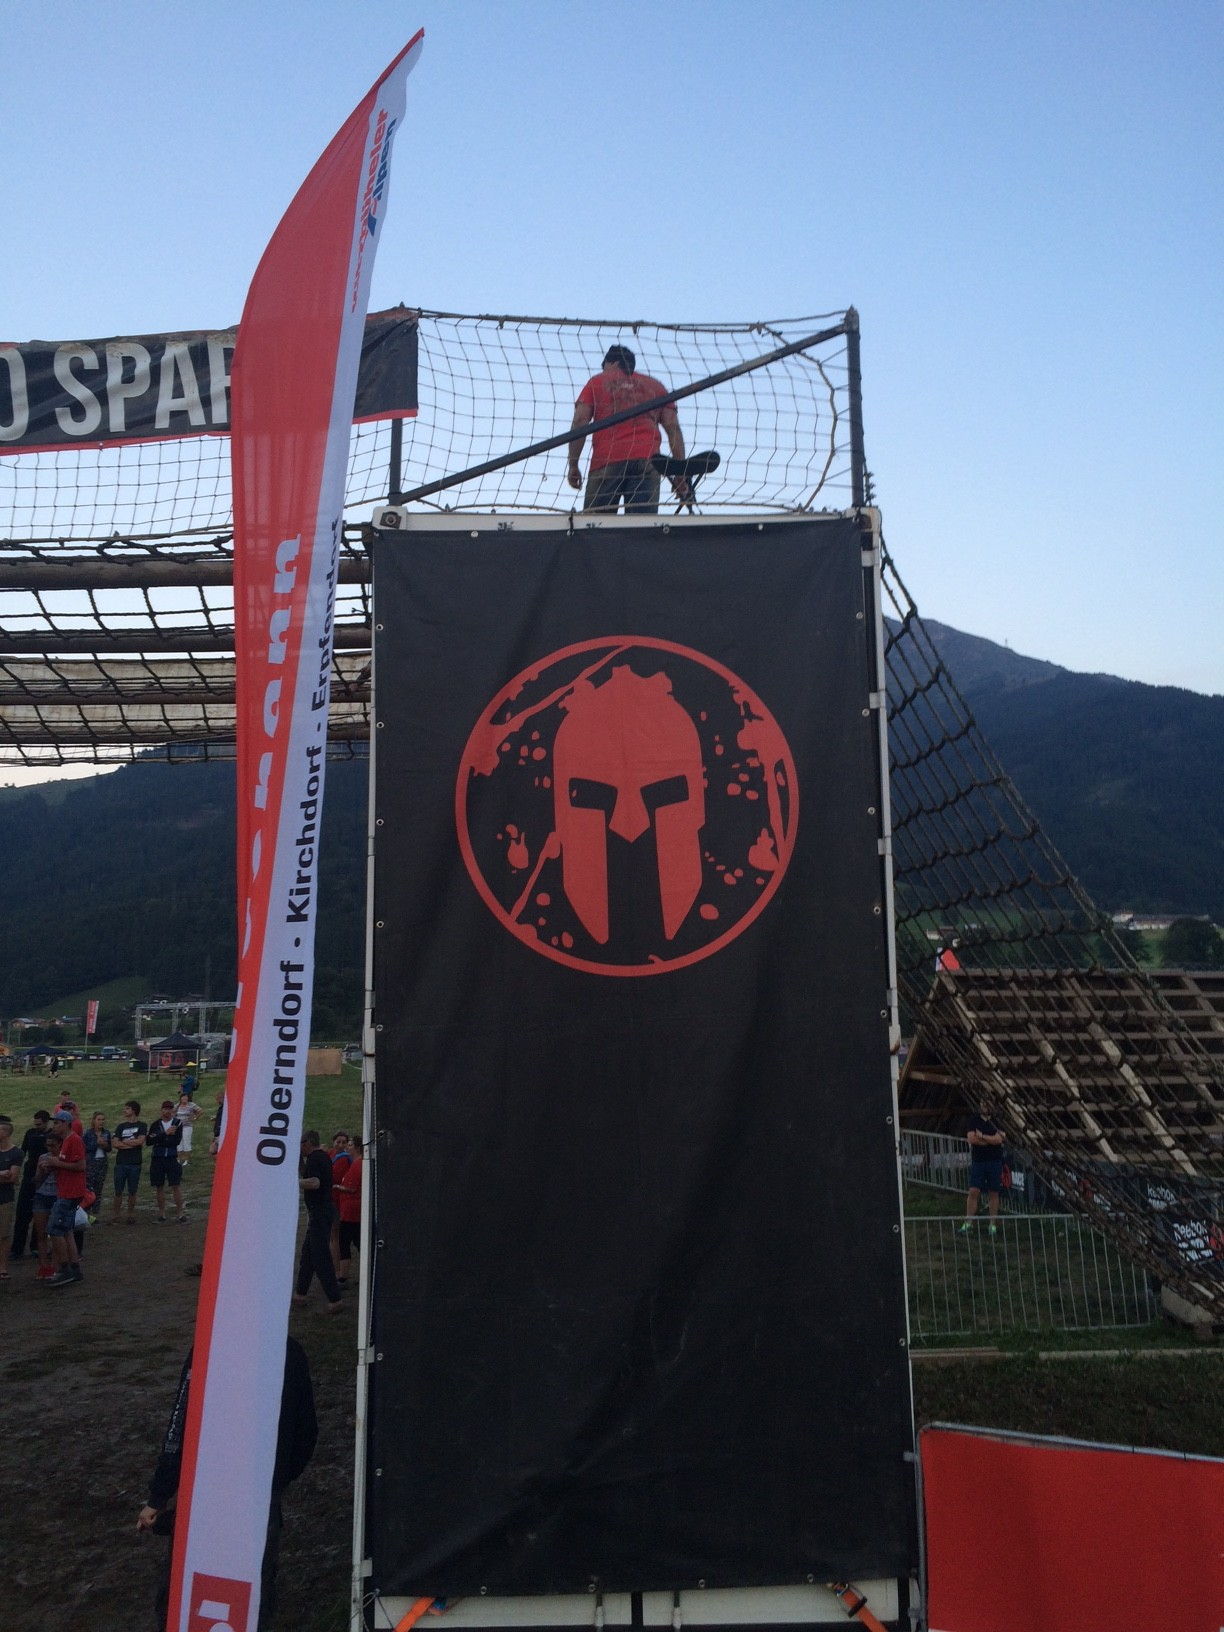 team up40, spartan race